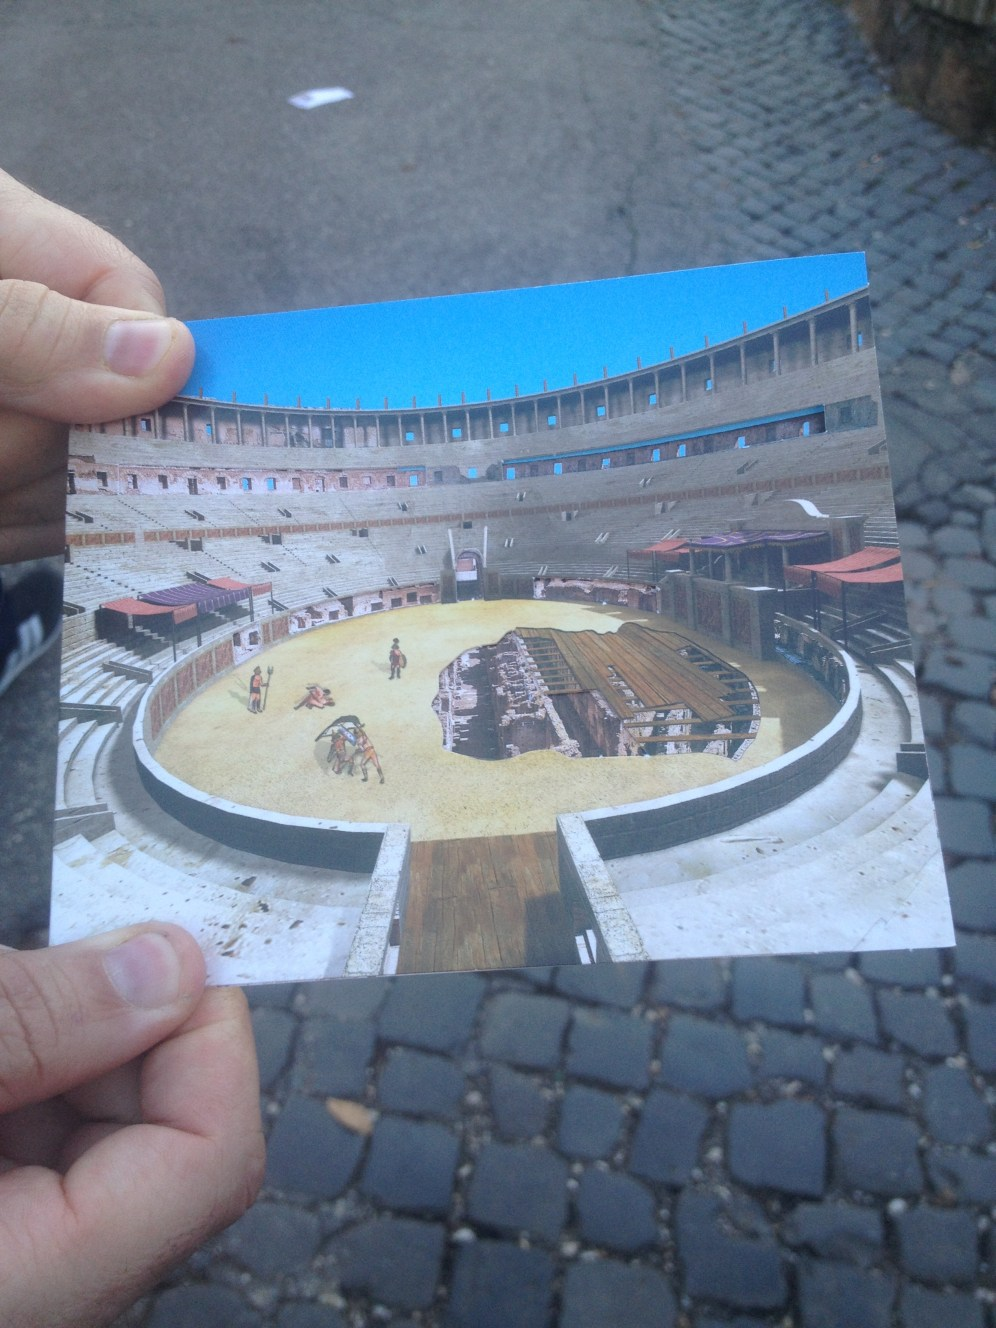 We sent a postcard from the gift shop at the Colosseum...